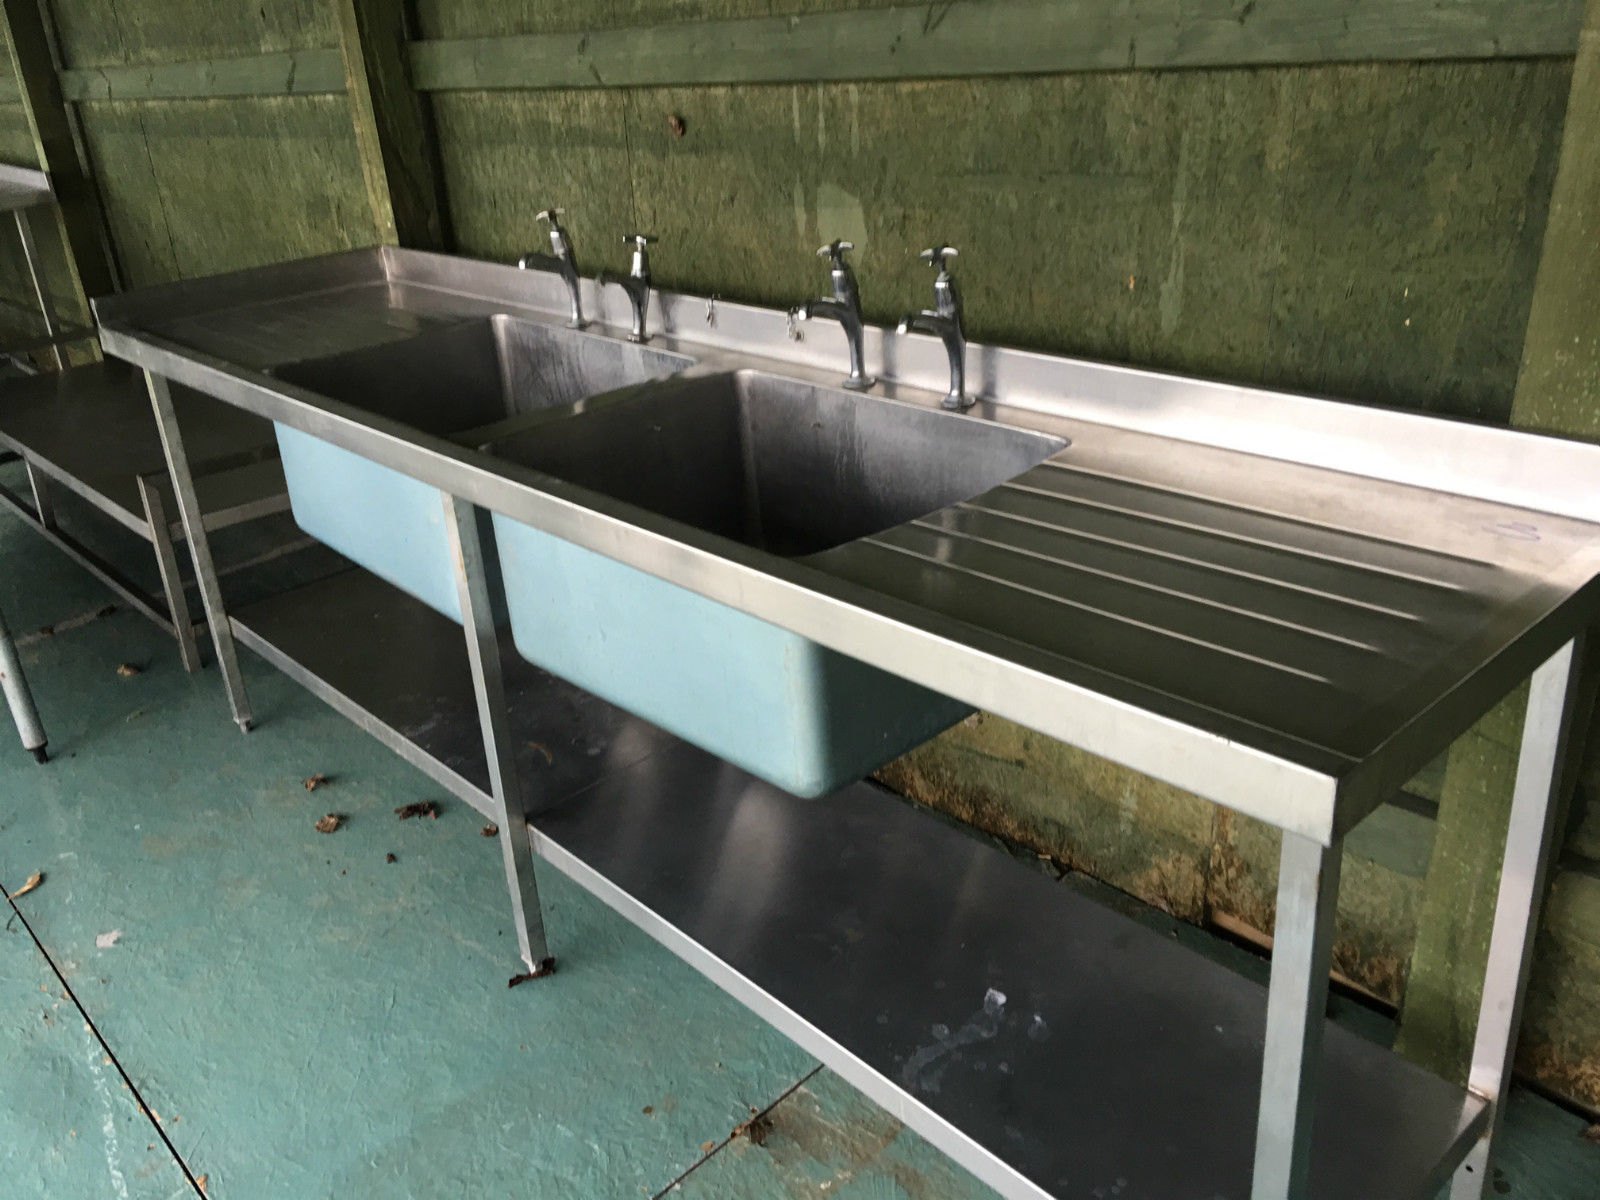 ... ? Products ? Sinks & Tables ? STAINLESS STEEL TABLES & SINKS